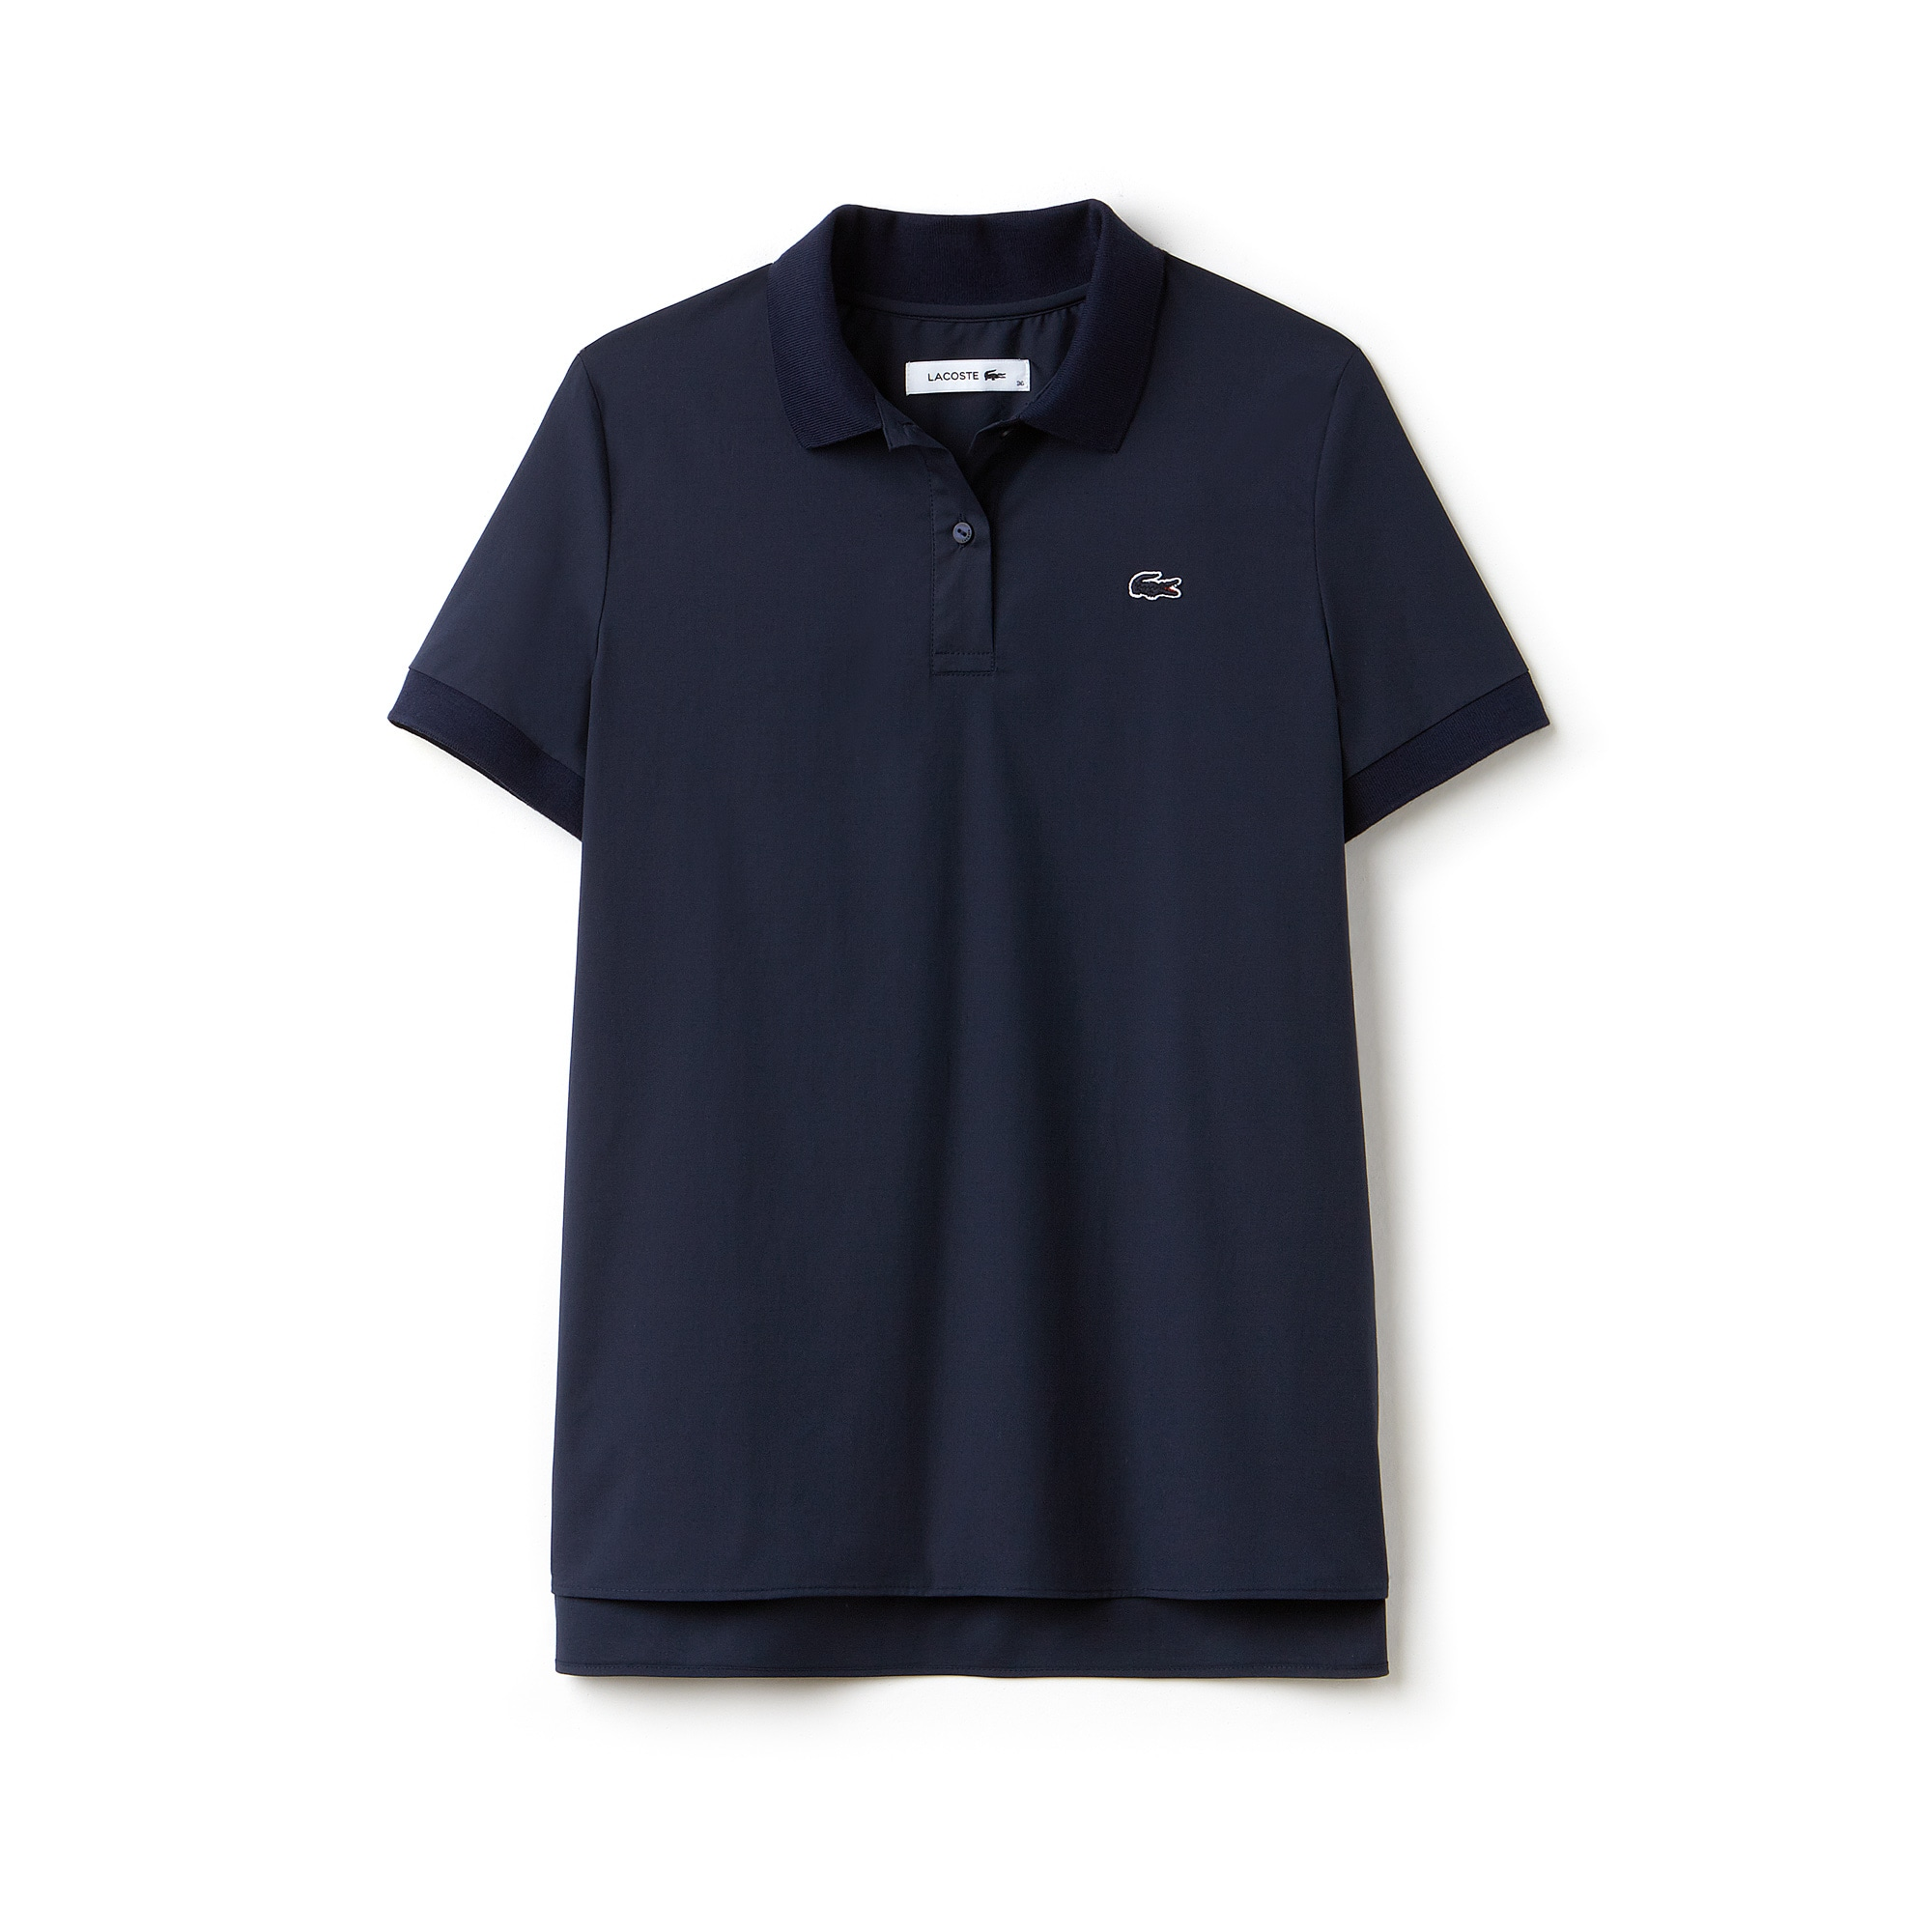 Polo regular fit Lacoste de popelín elástico Edición Paris Polo